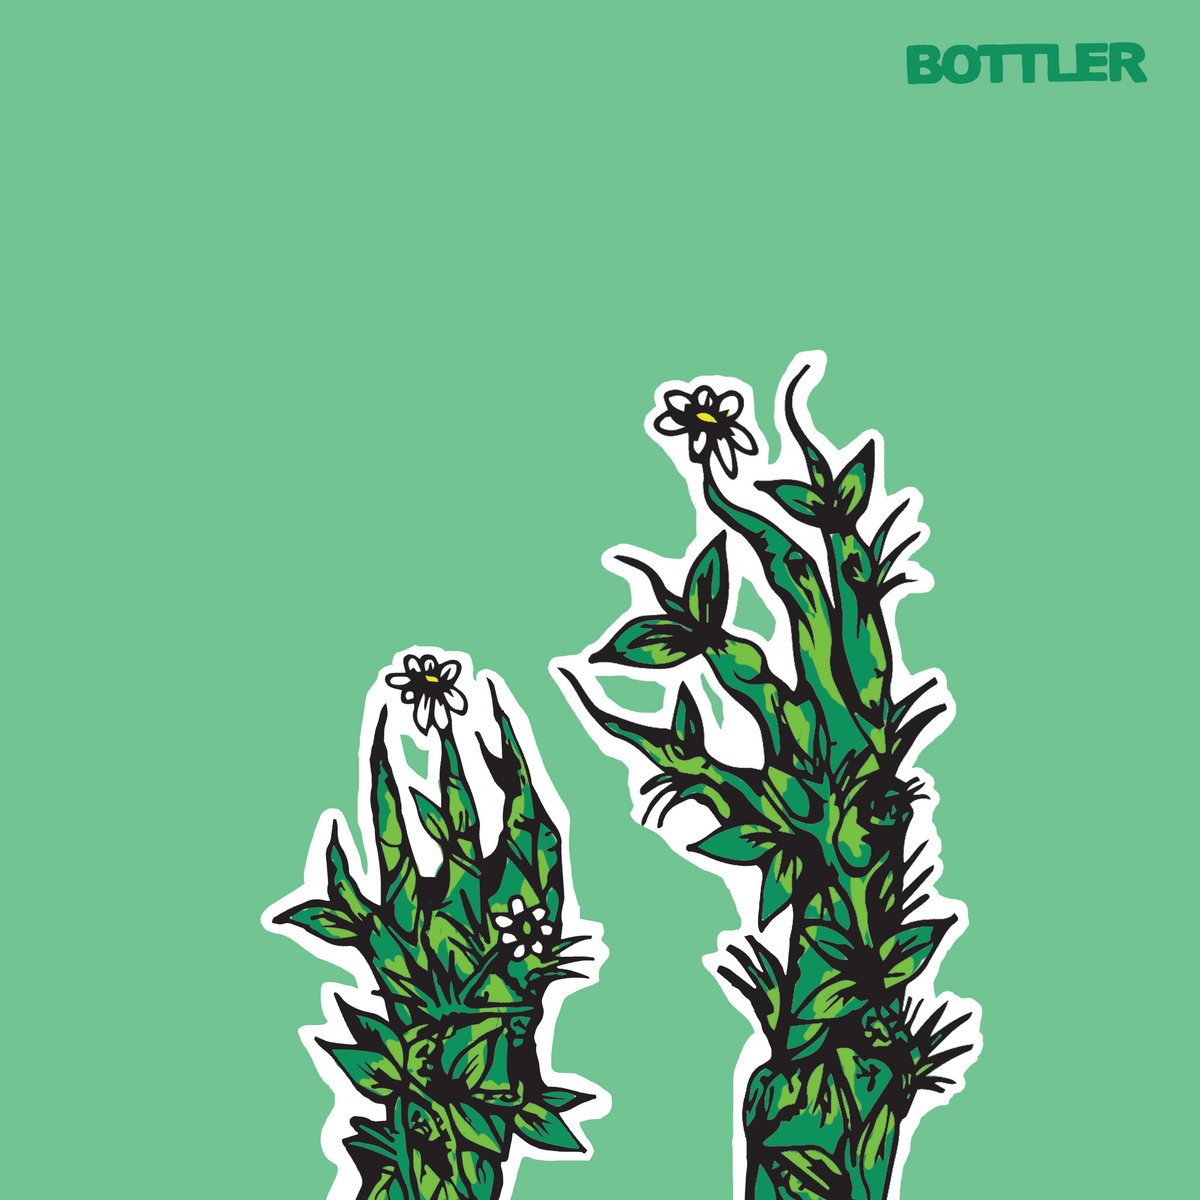 """Cover art for the single edit of """"Soft Winds"""" by Bottler"""